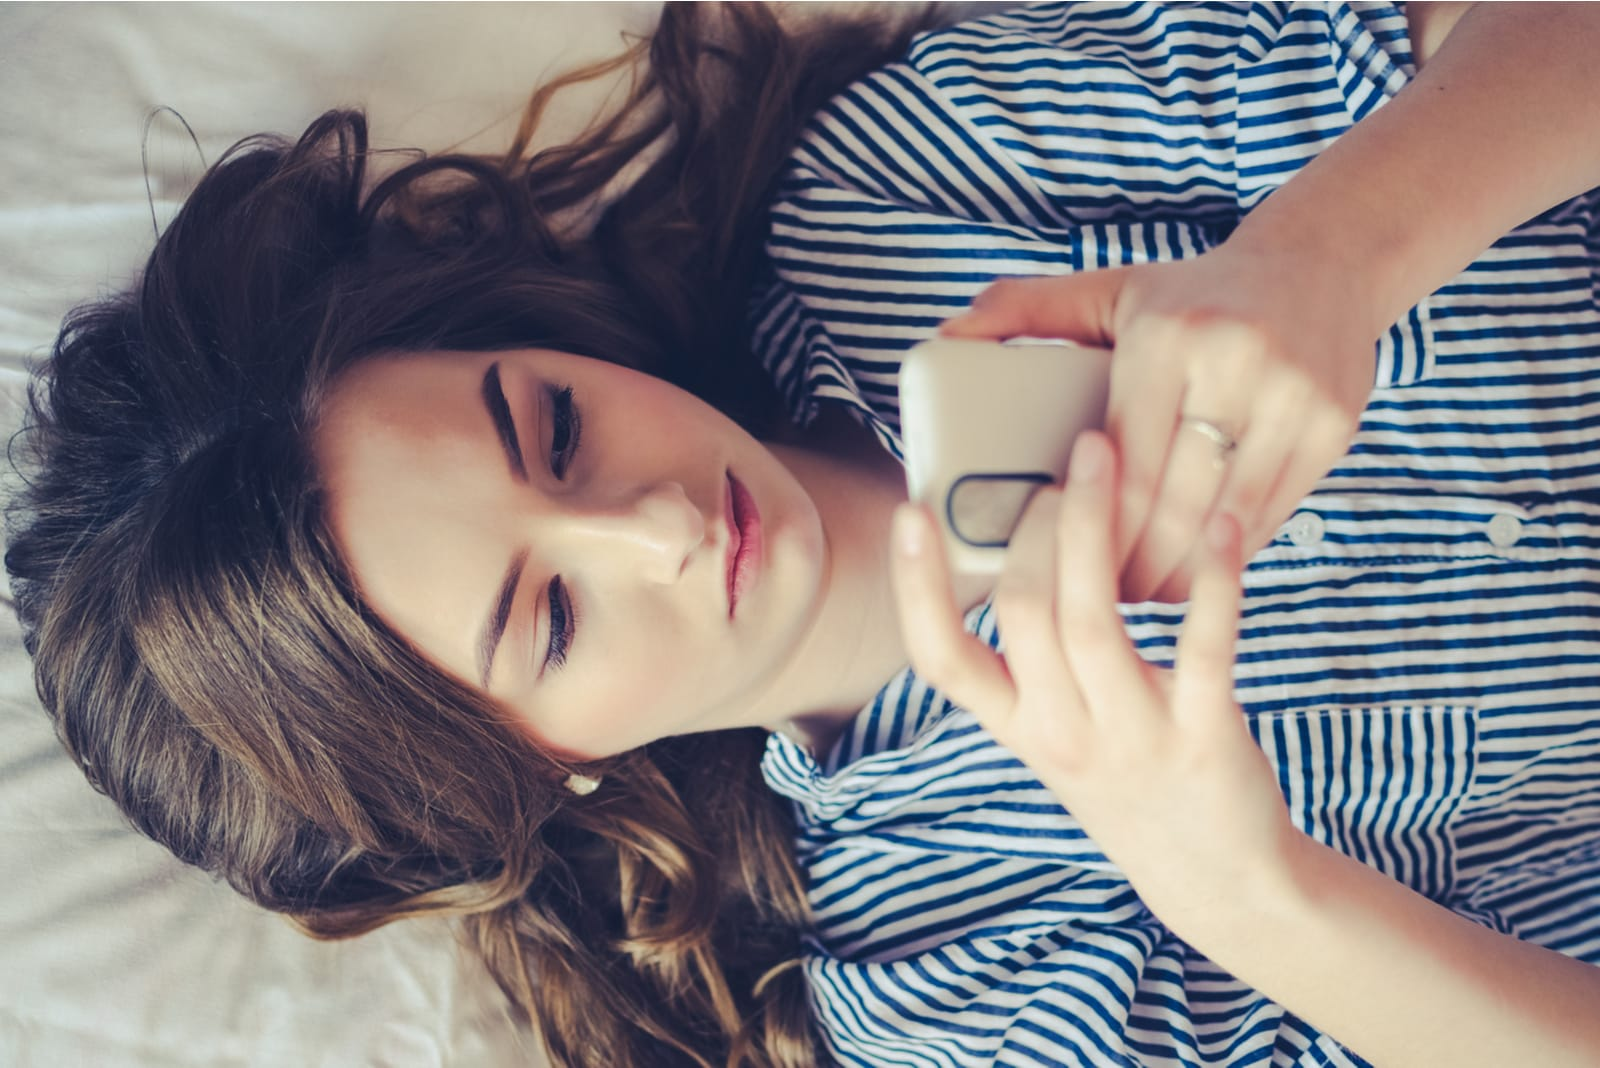 young woman lying in bed and texting on phone